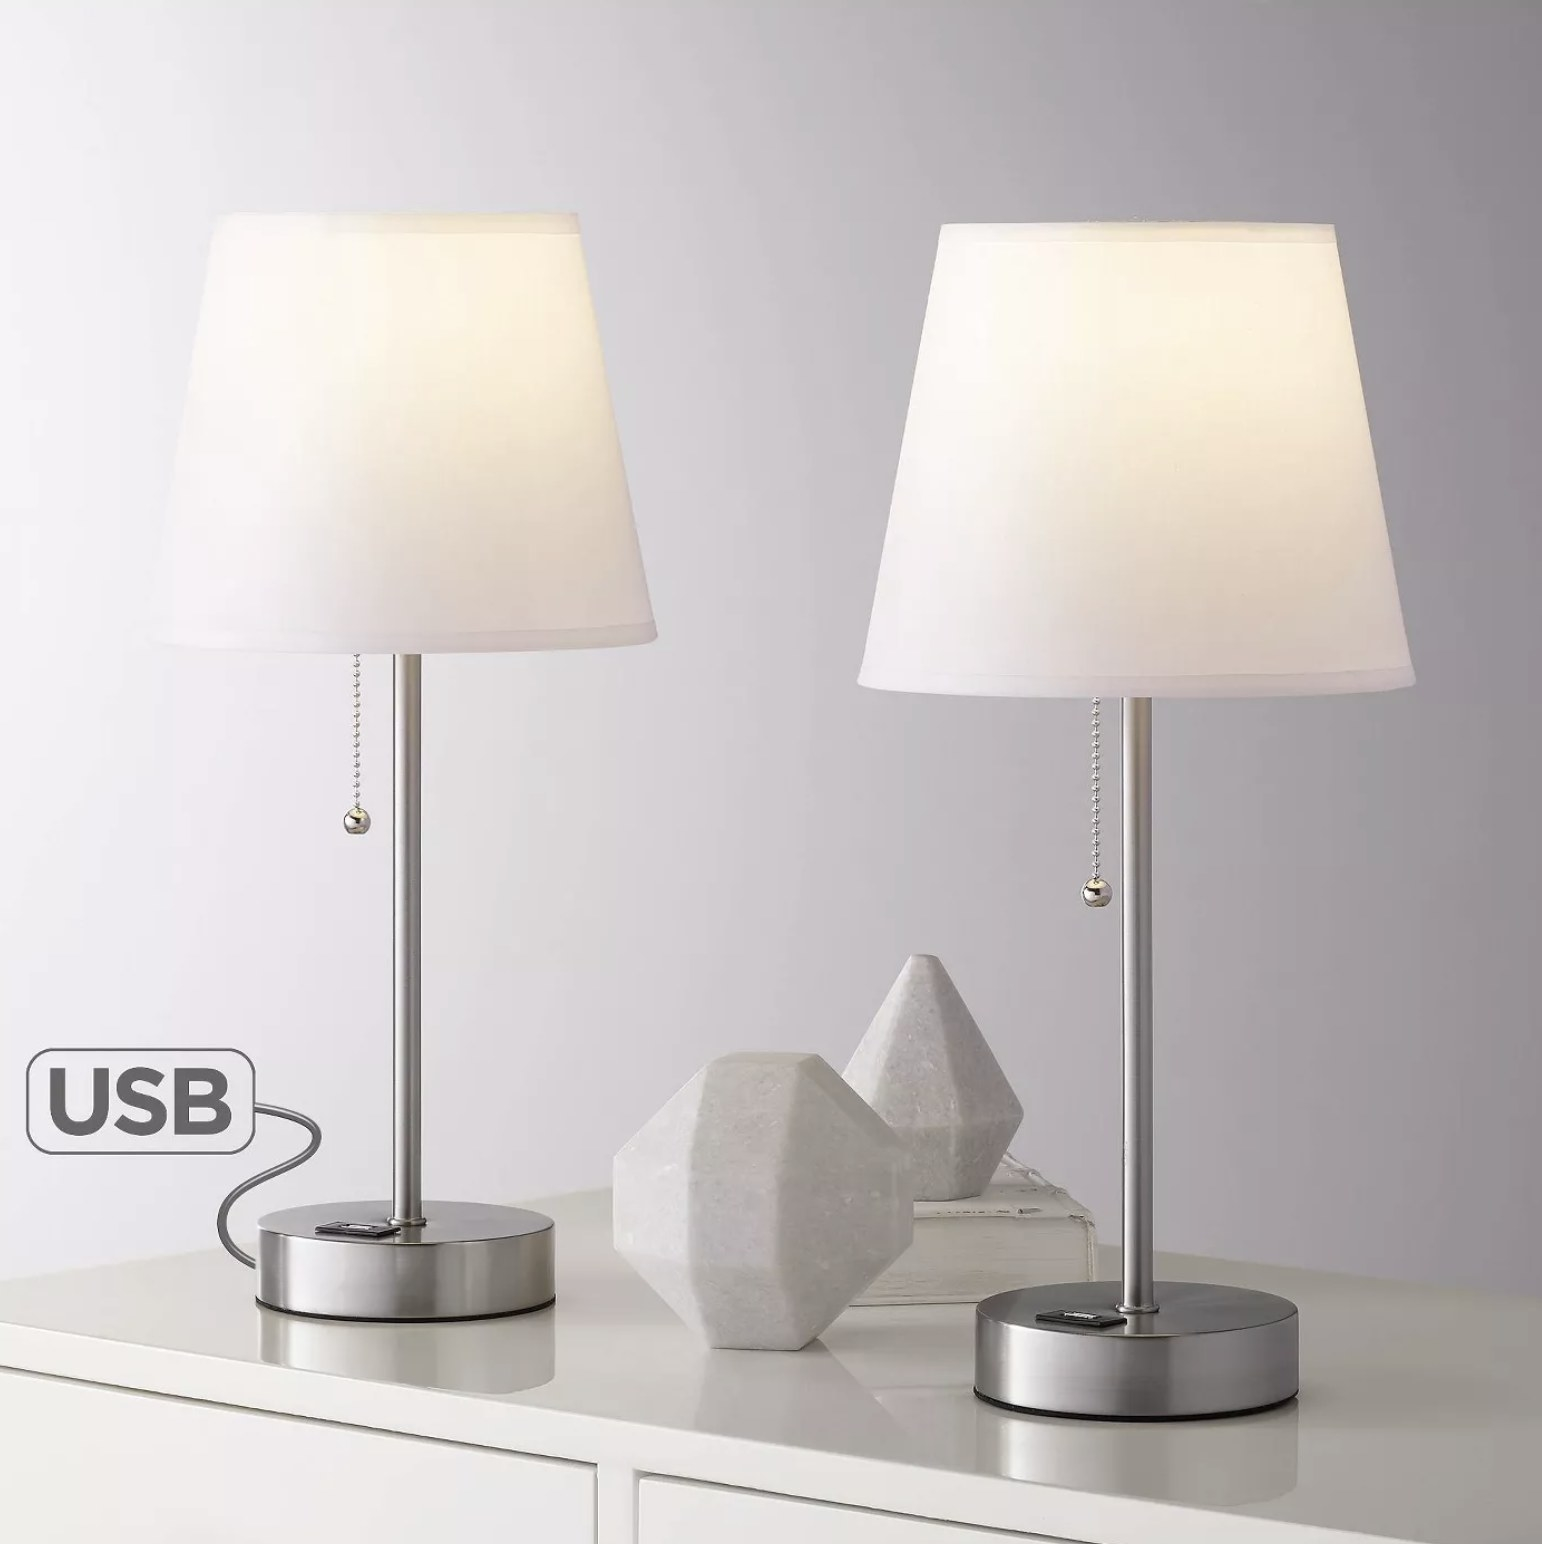 Two stainless steel lamps with usb charging ports on the base sit on a dresser